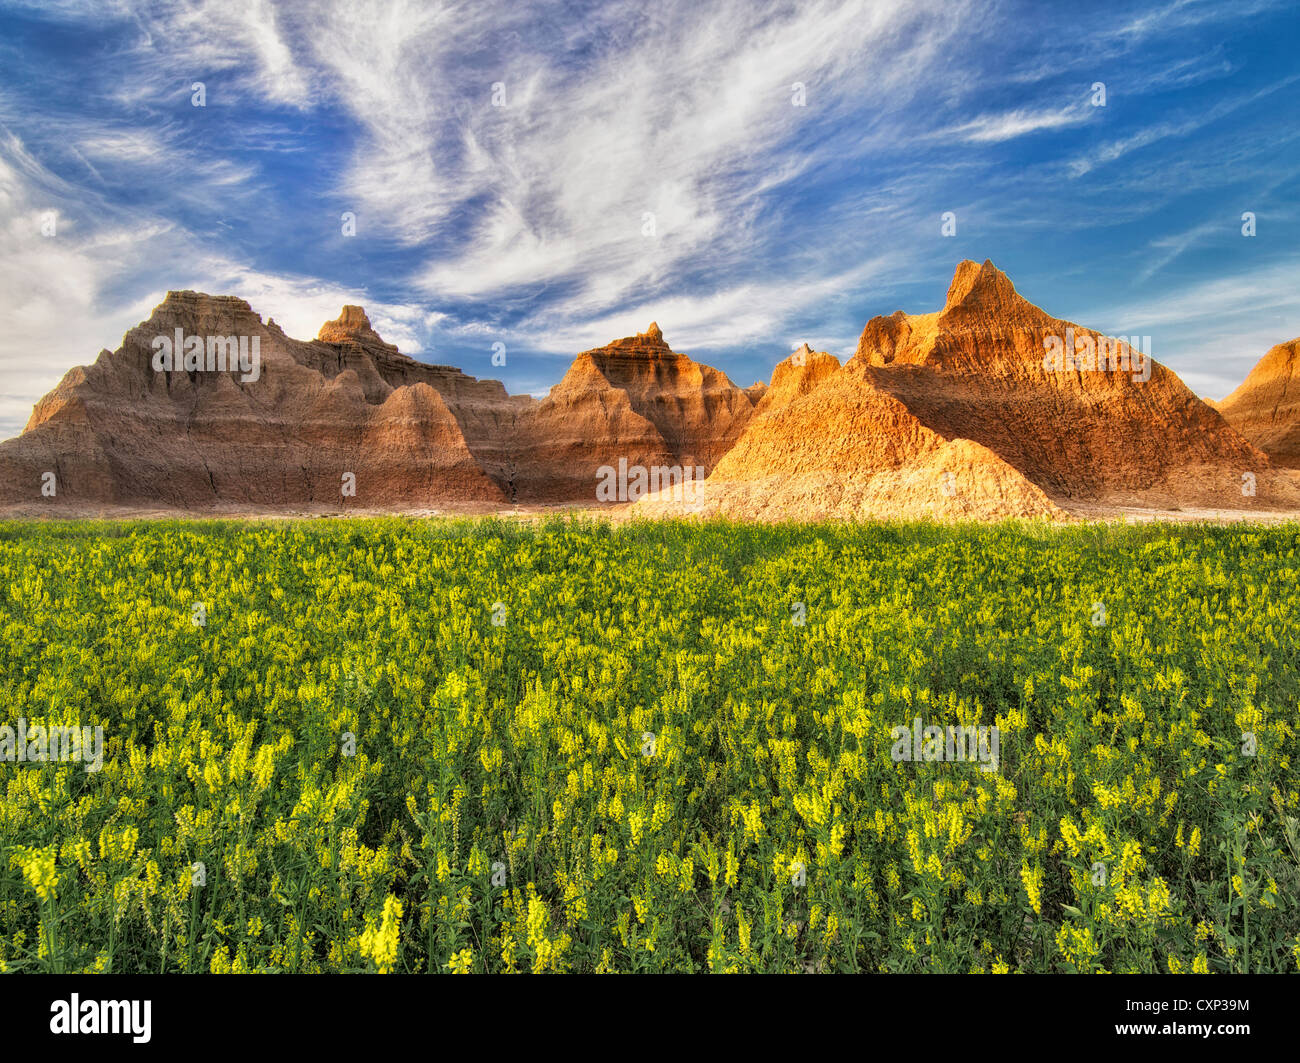 Yellow Sweet Clover and rock formations. Badlands National Park, South Dakota. Stock Photo